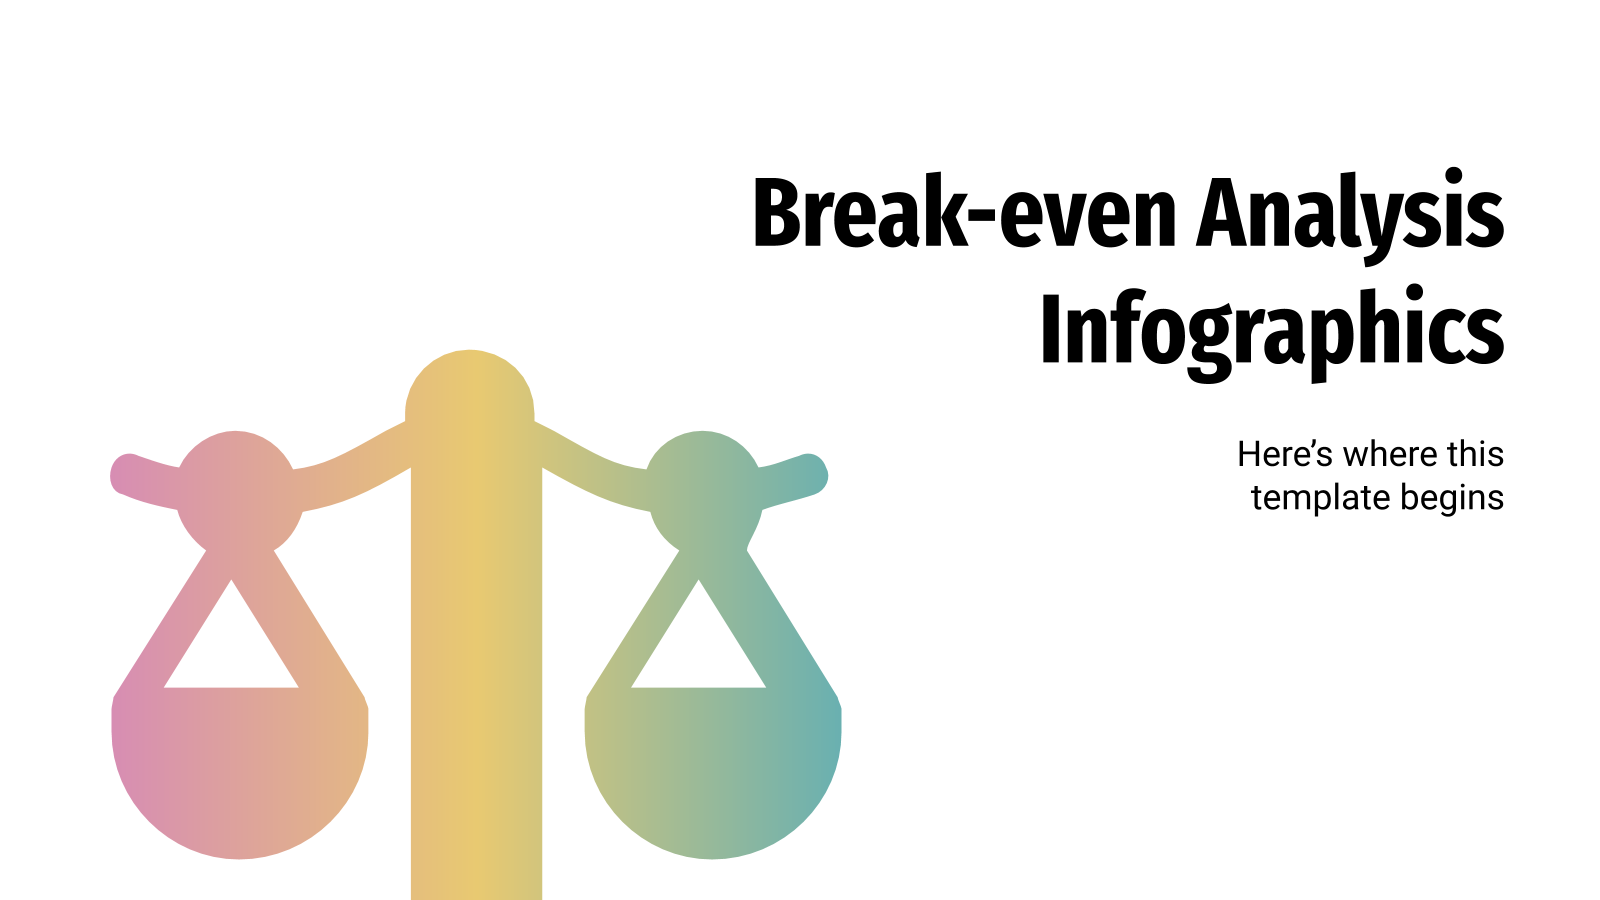 Break-even Analysis Infographics presentation template